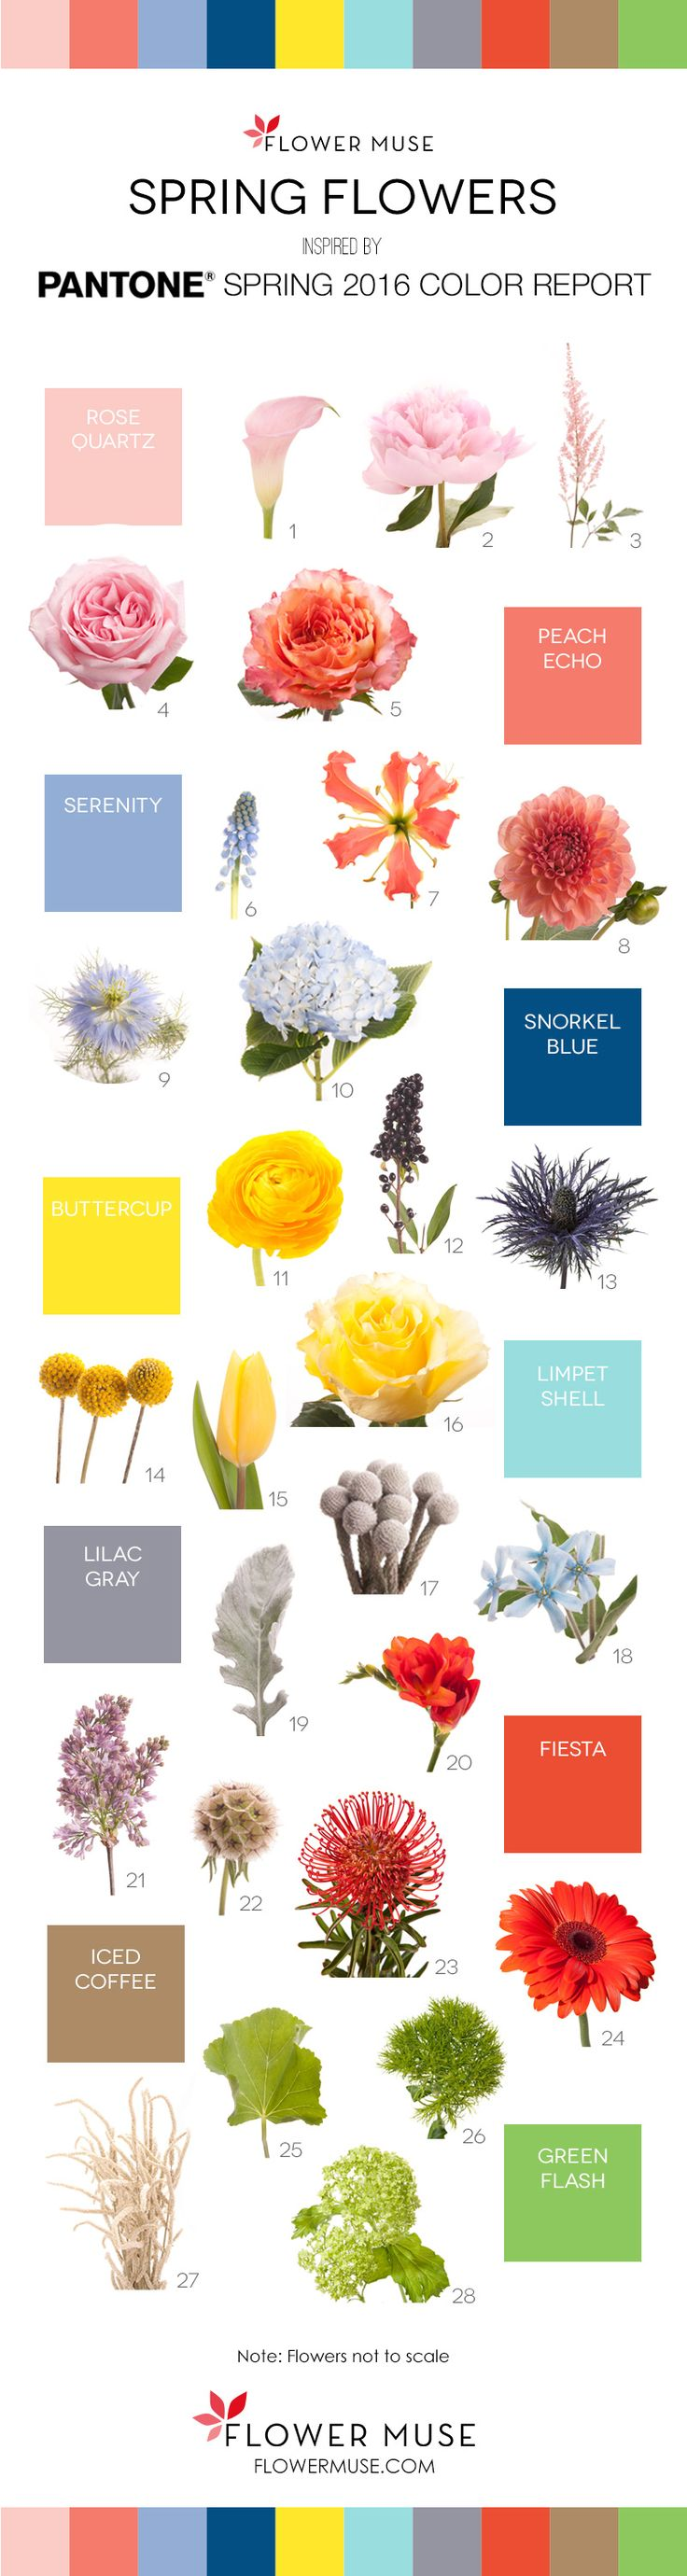 Spring Flowers inspired by Pantone 2016 Spring Color Report. See it on Flower Muse blog: http://www.flowermuse.com/blog/2016-spring-flowers-pantone-inspiration/